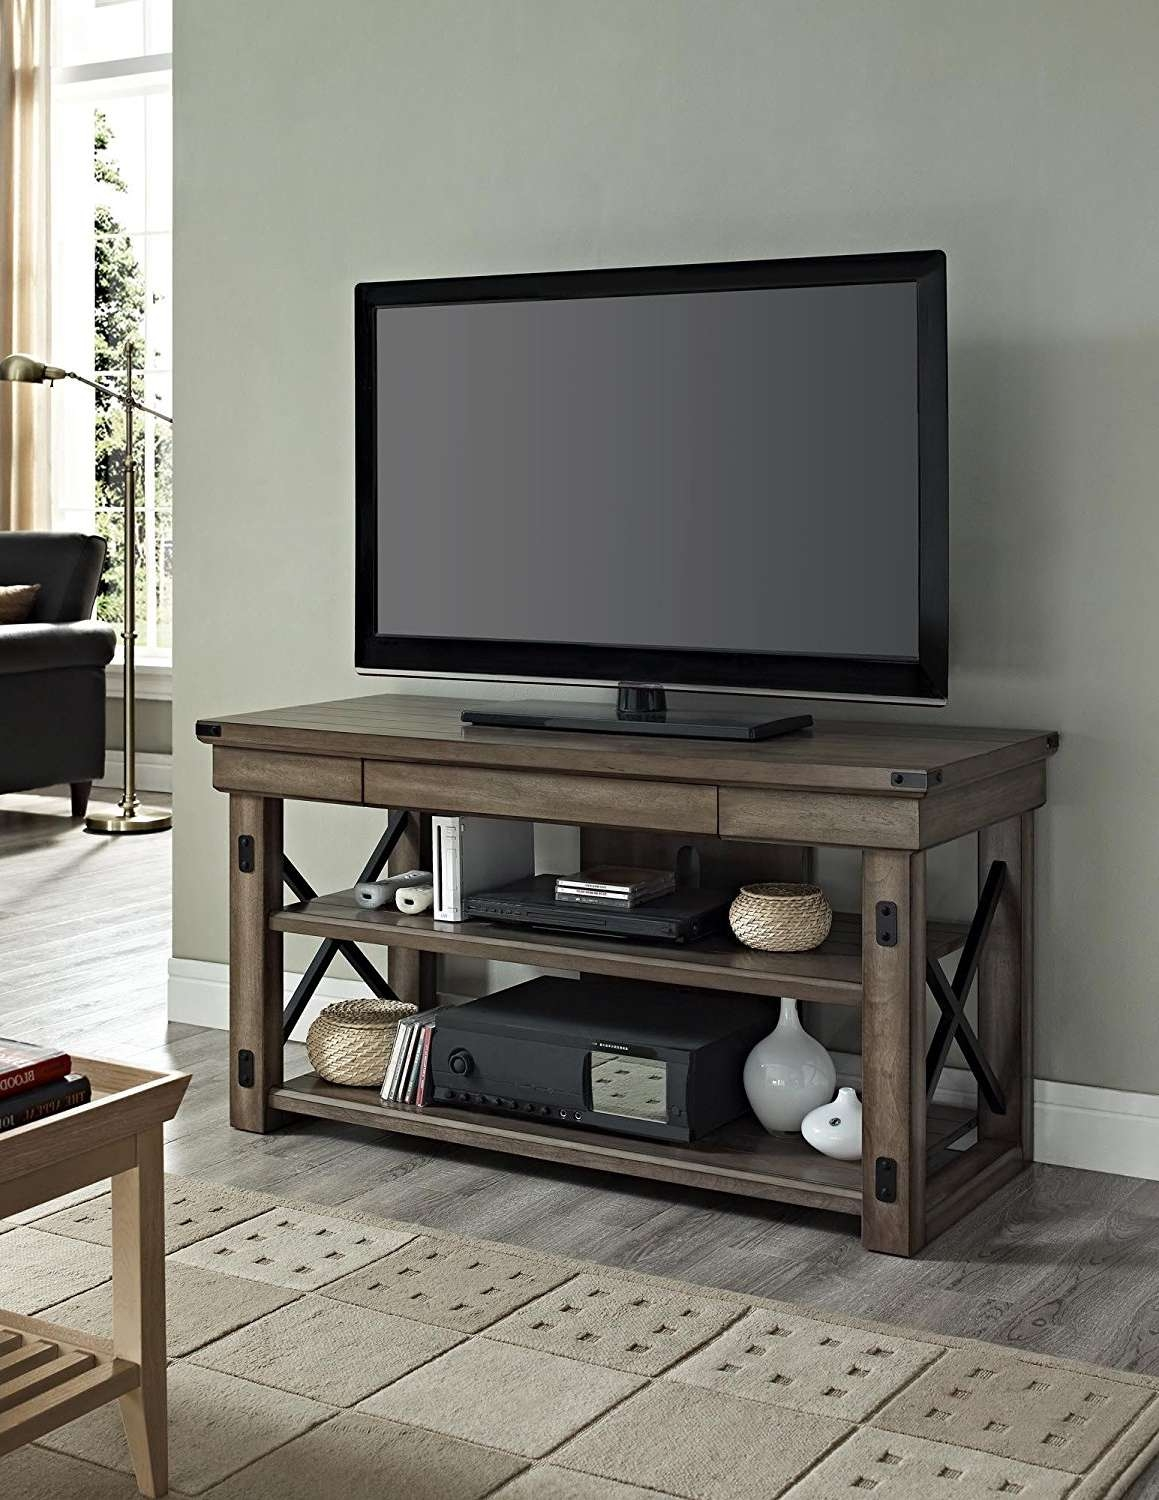 Epic Rustic Tv Stand 55 For Home Remodel Ideas With Rustic Tv For Rustic Tv Stands (Gallery 17 of 20)